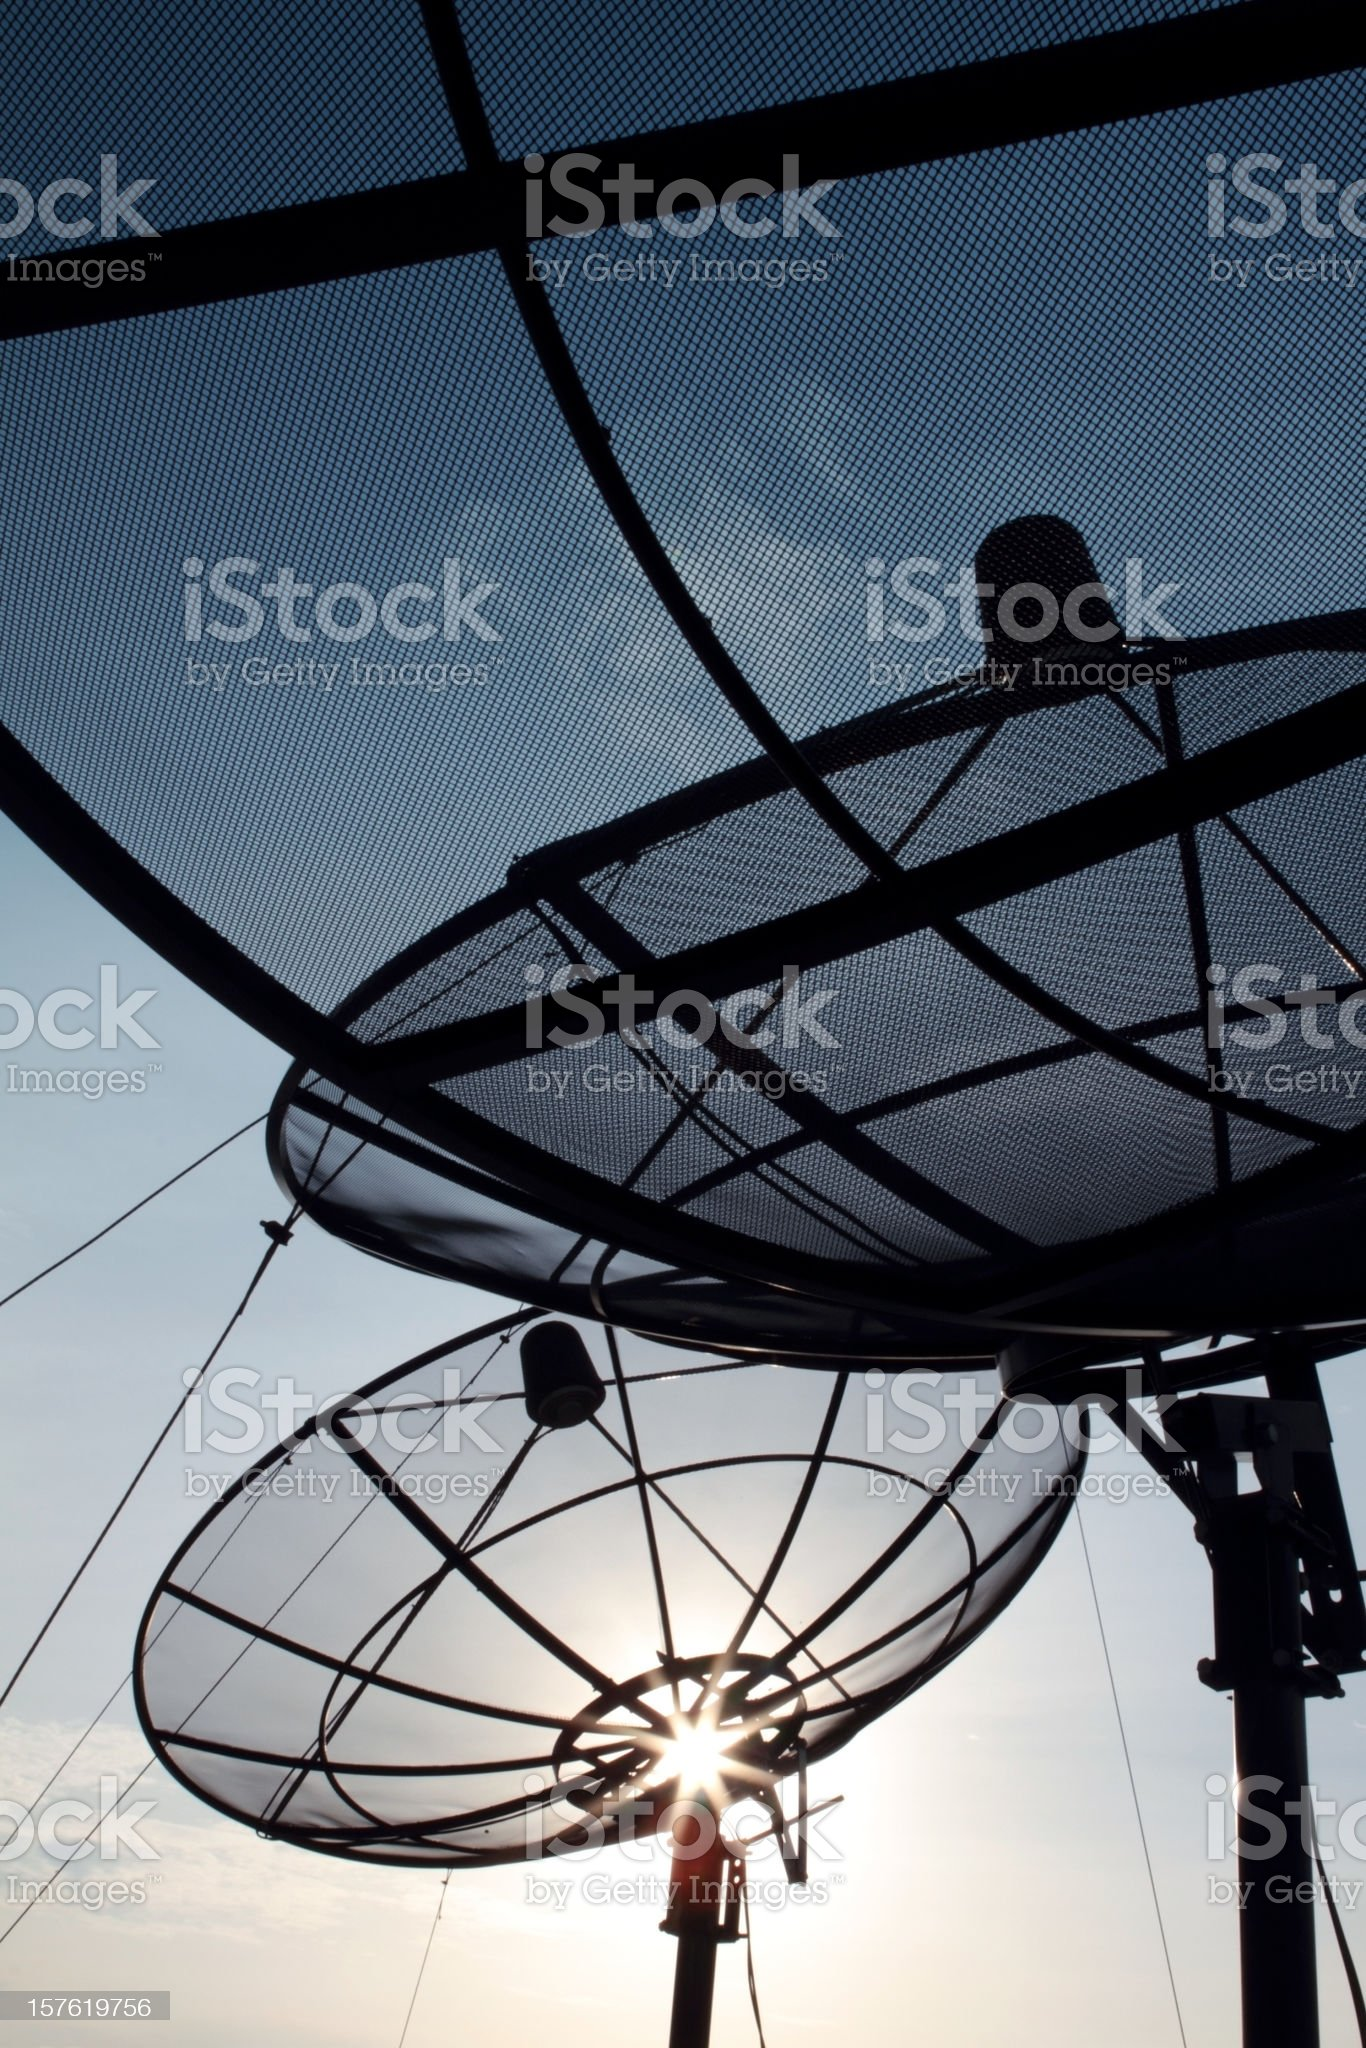 Modern satellite dish at dusk with sunlight flare royalty-free stock photo